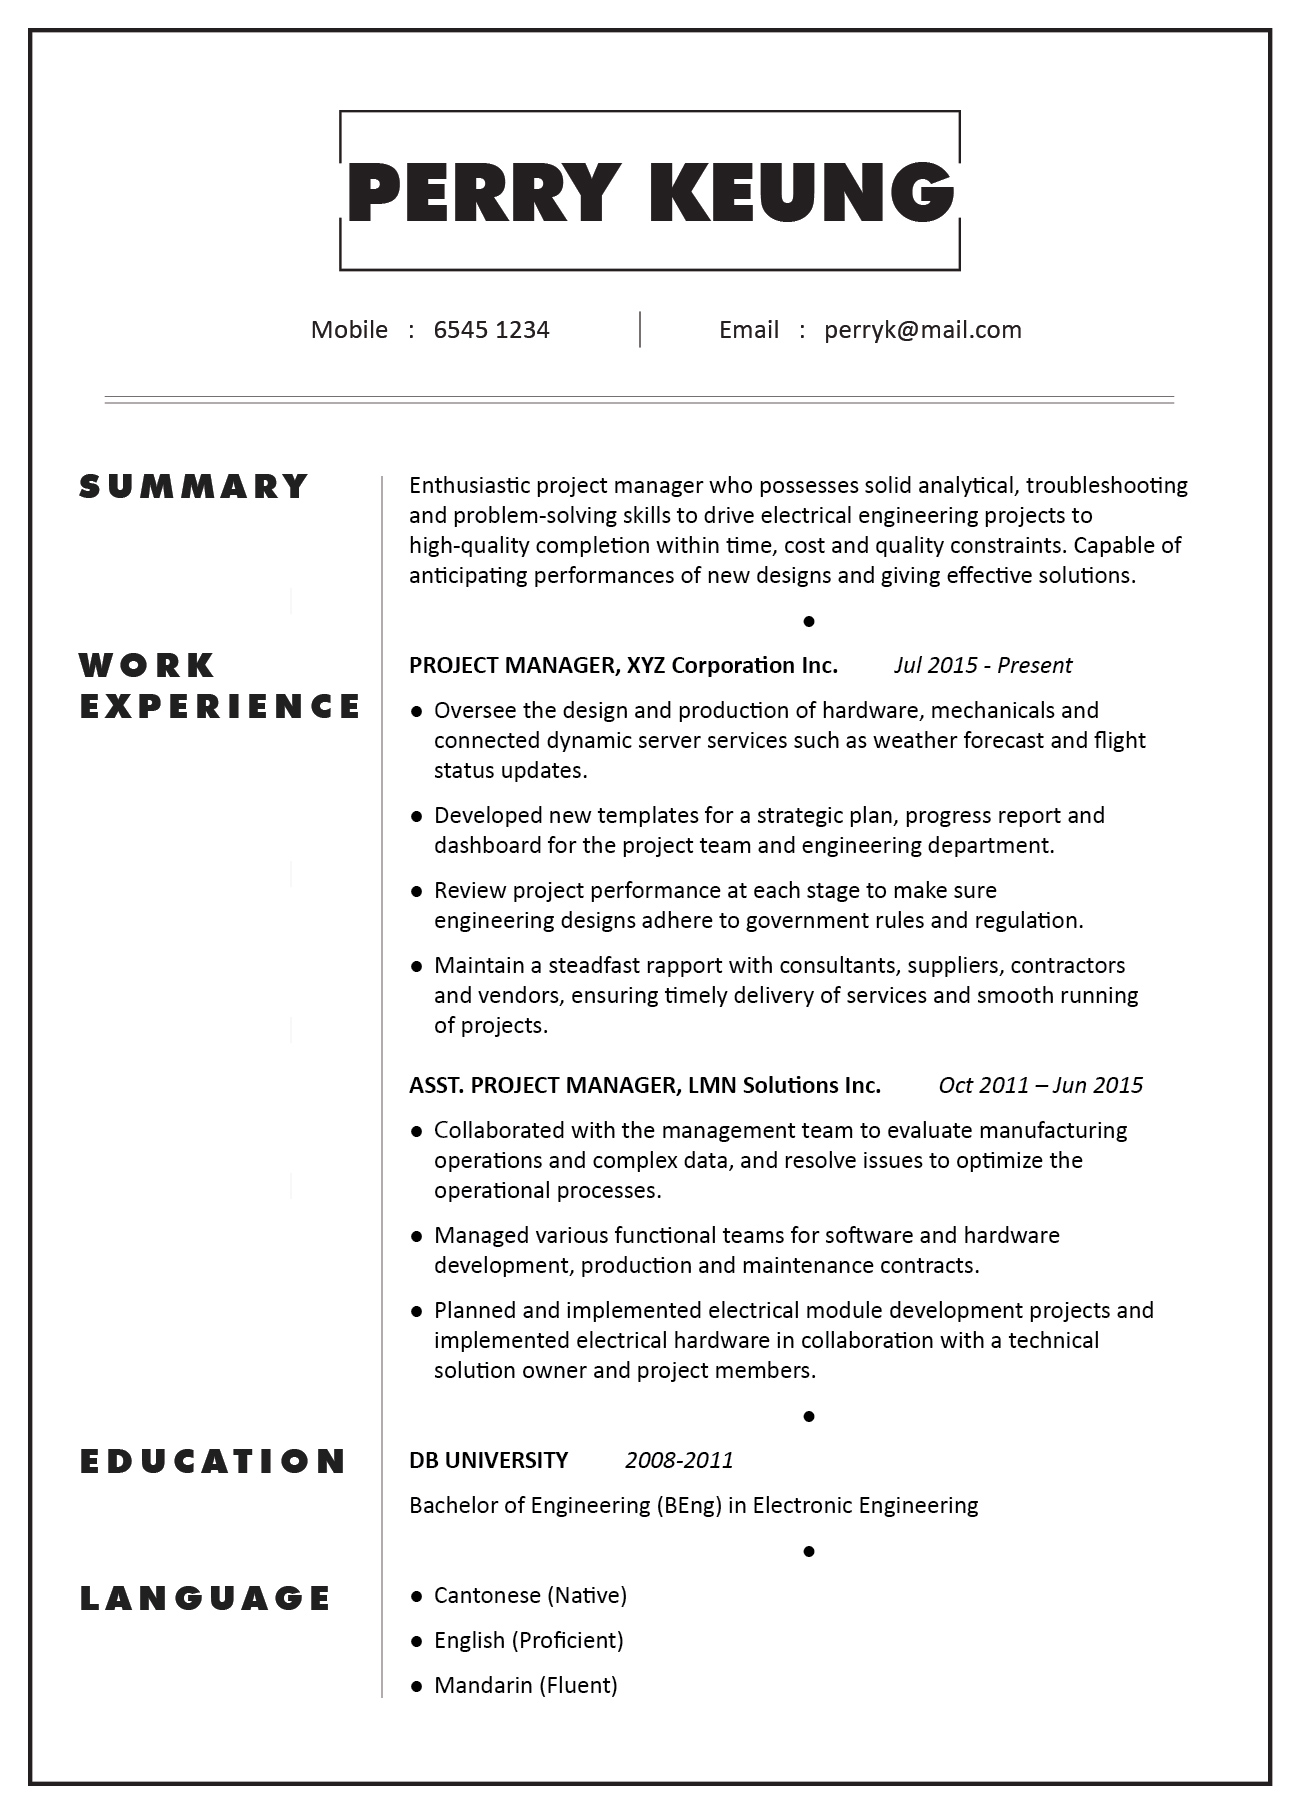 cv sample project manager electronic electrical mechanical engineering jobsdb hong kong Resume Project Manager Description For Resume